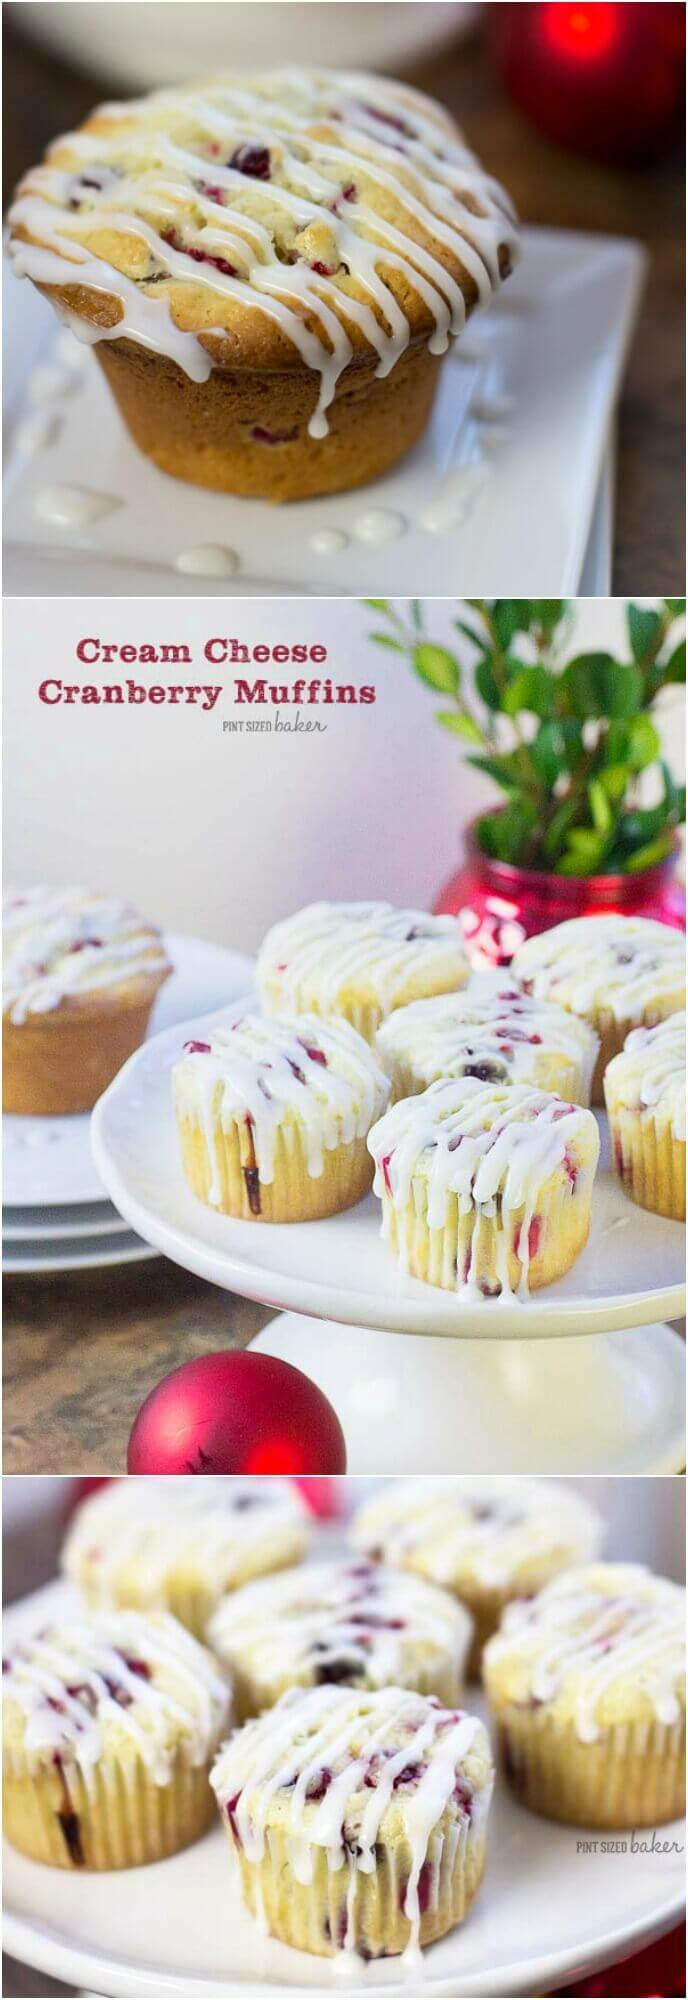 This Cream Cheese Cranberry Muffin recipe is the perfect thing to make with a house full of guests this holiday season. Cozy up with the family and enjoy a muffin and a cup of coffee.